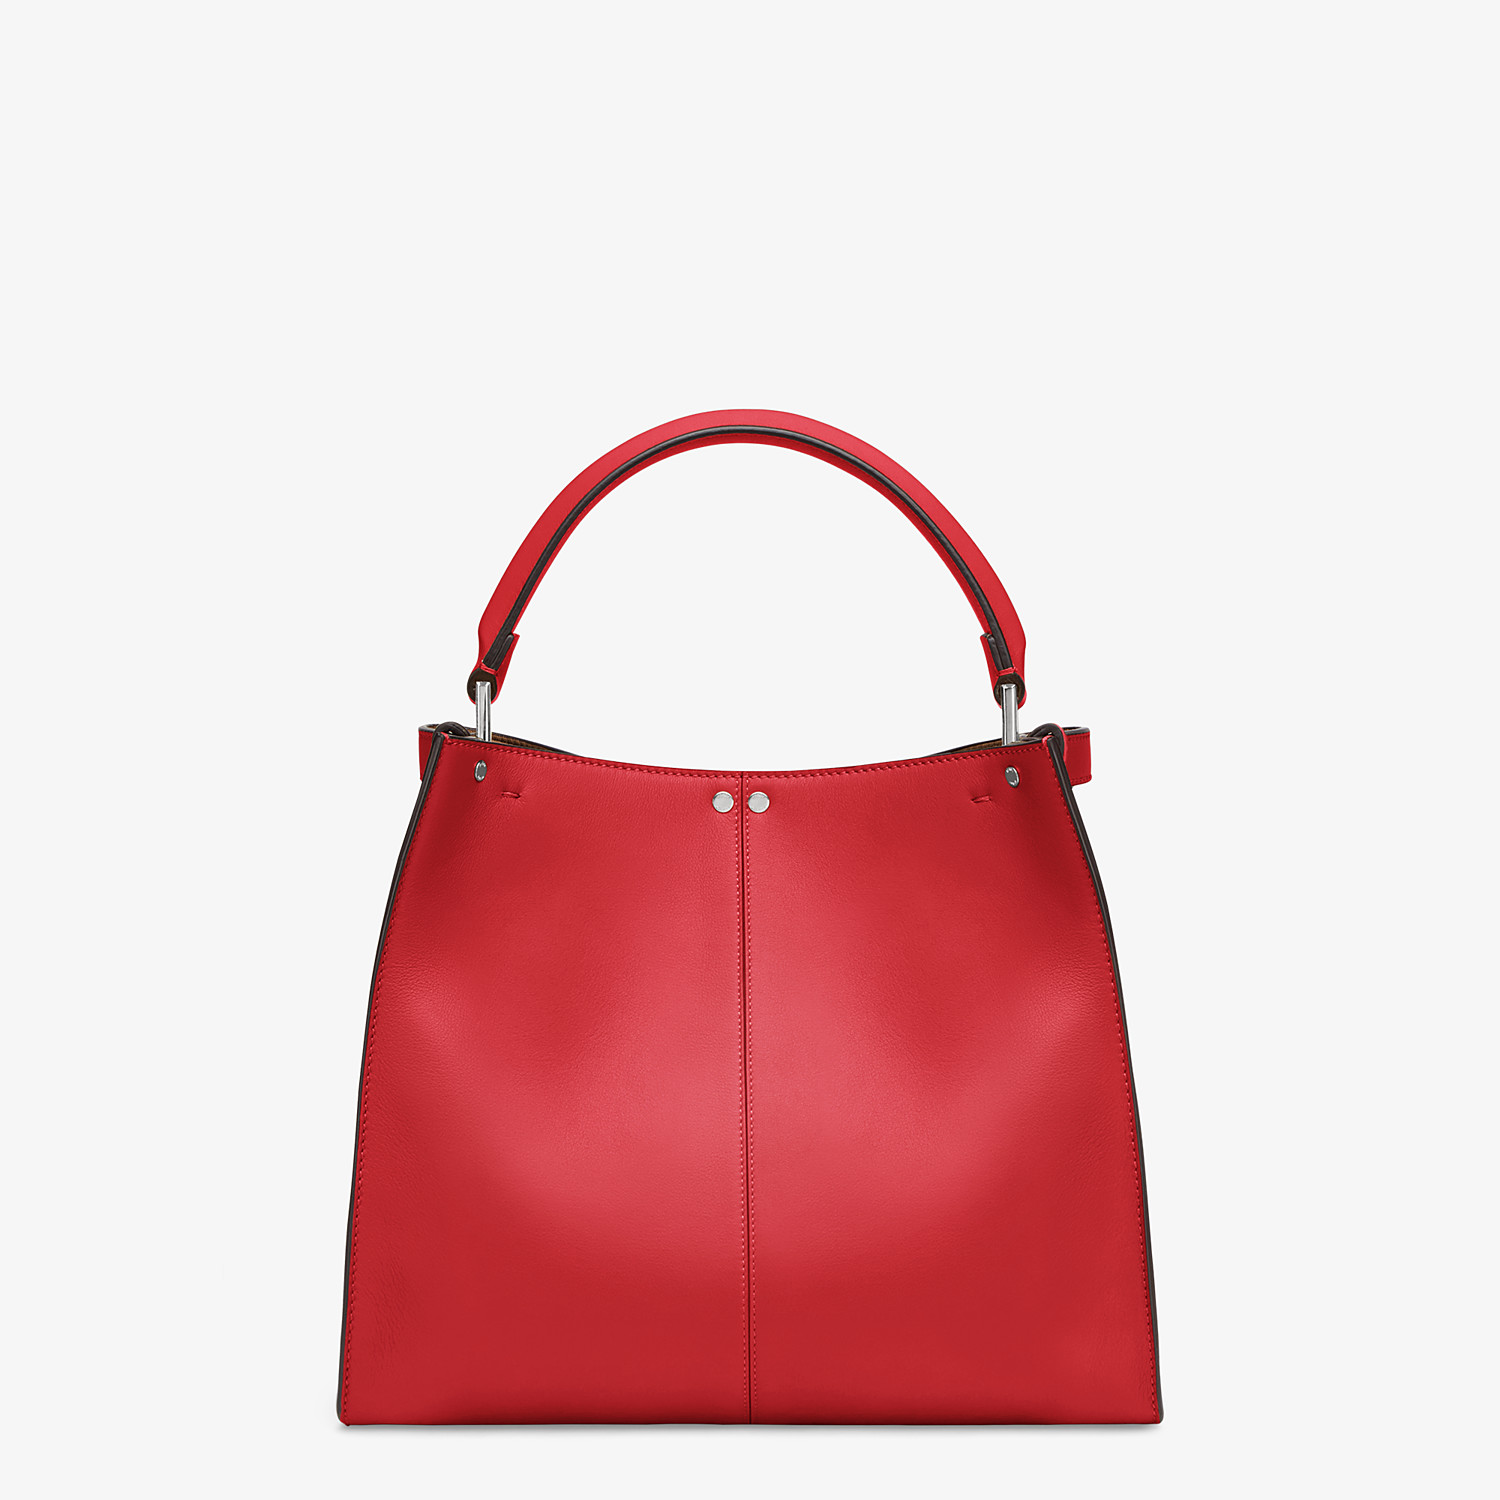 FENDI PEEKABOO X-LITE MEDIUM - Tasche aus Leder in Rot - view 5 detail